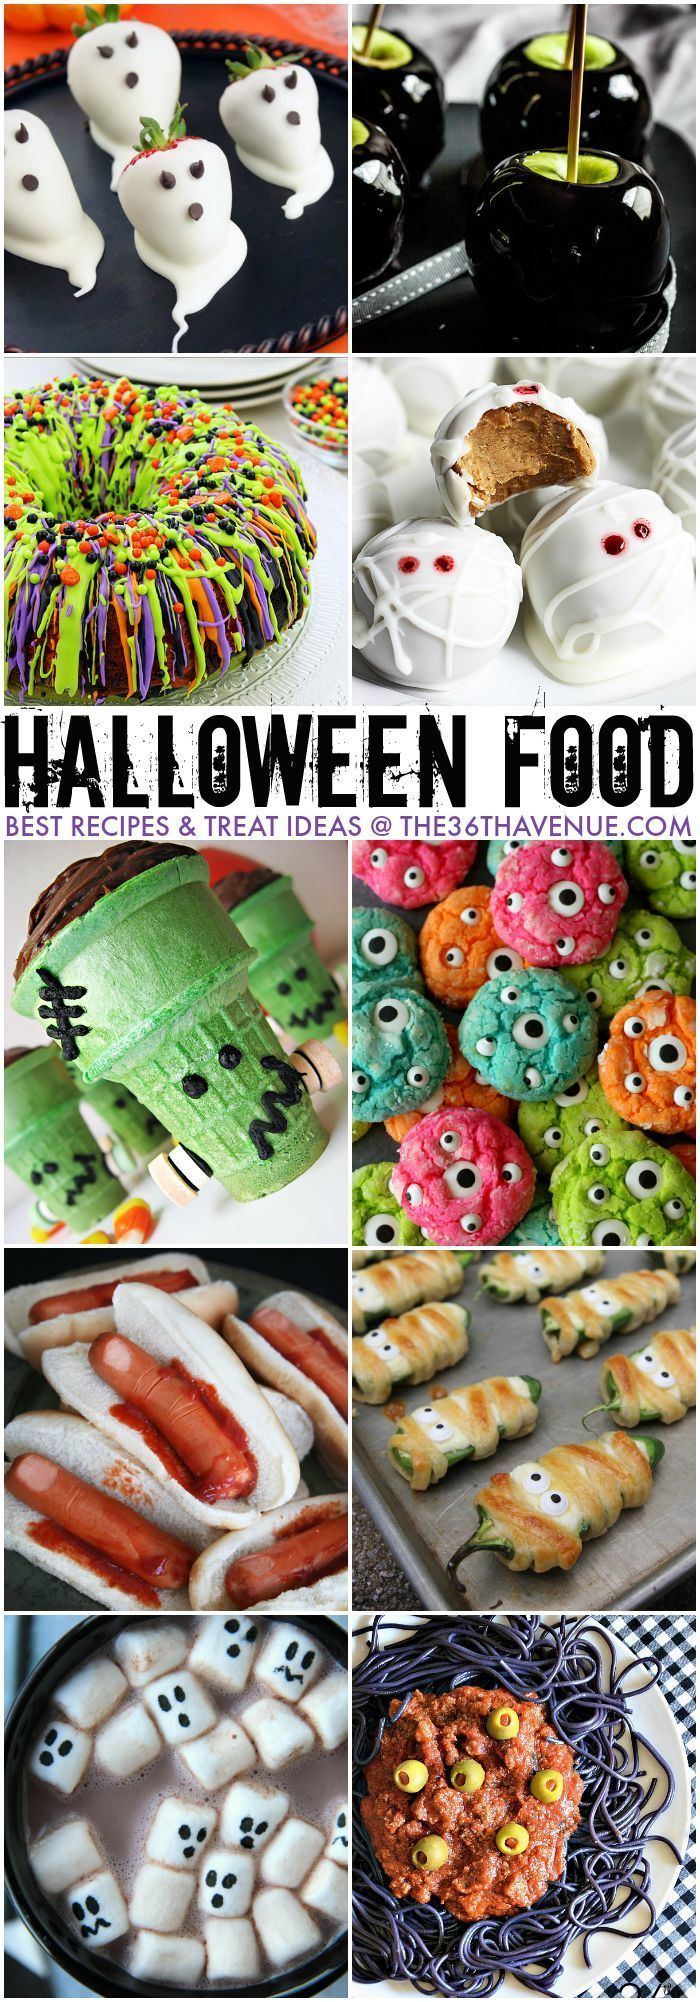 Halloween Treats and Recipes at the36thavenue.com These are AWESOME!